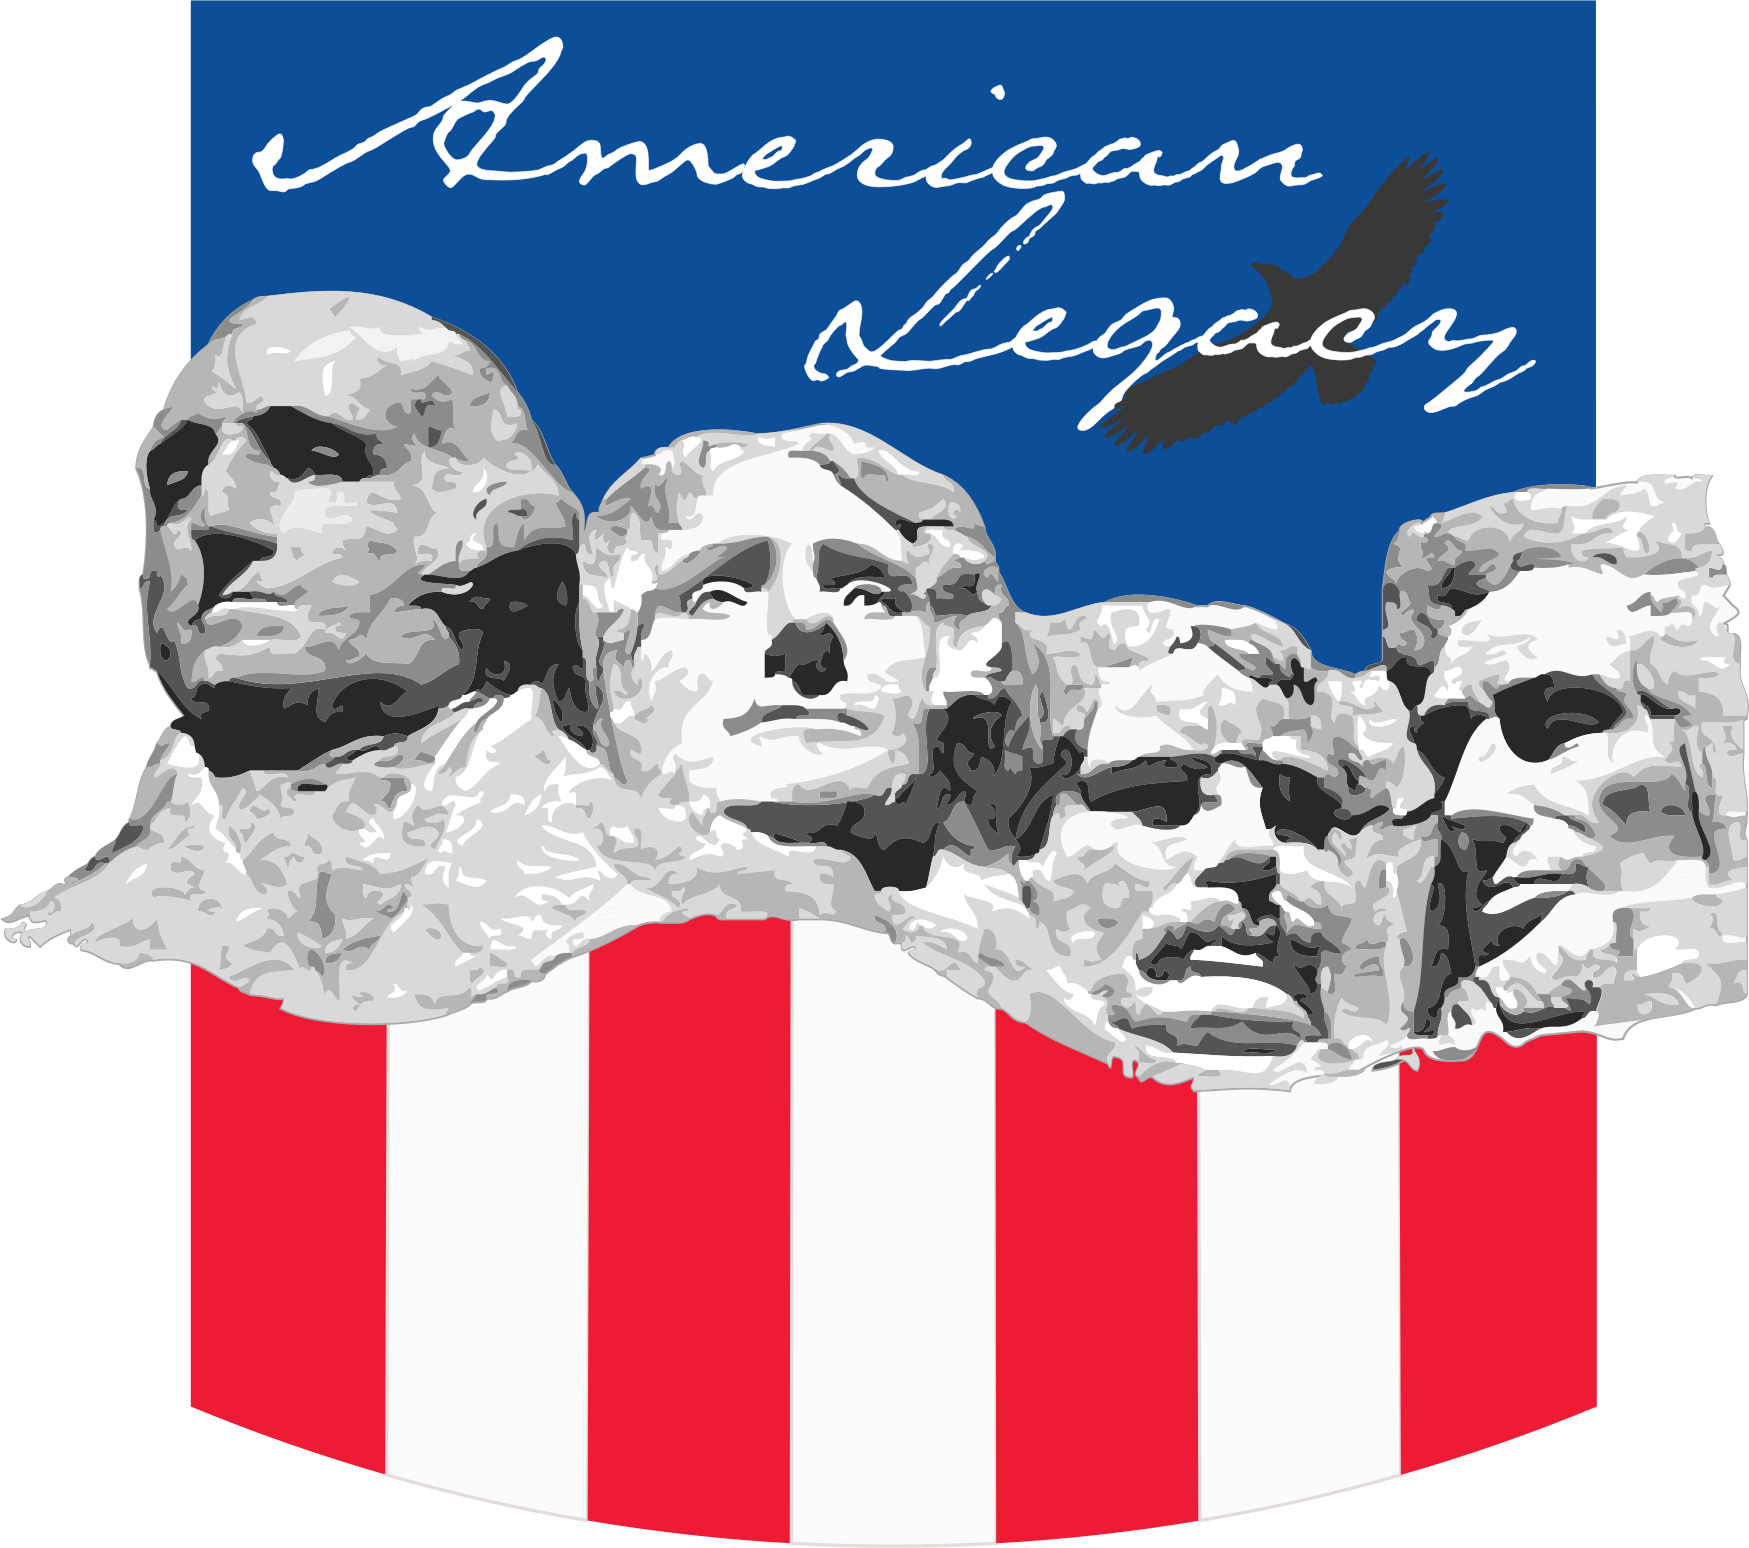 clipart transparent stock Mount rushmore clipart president. American legacy mt big.